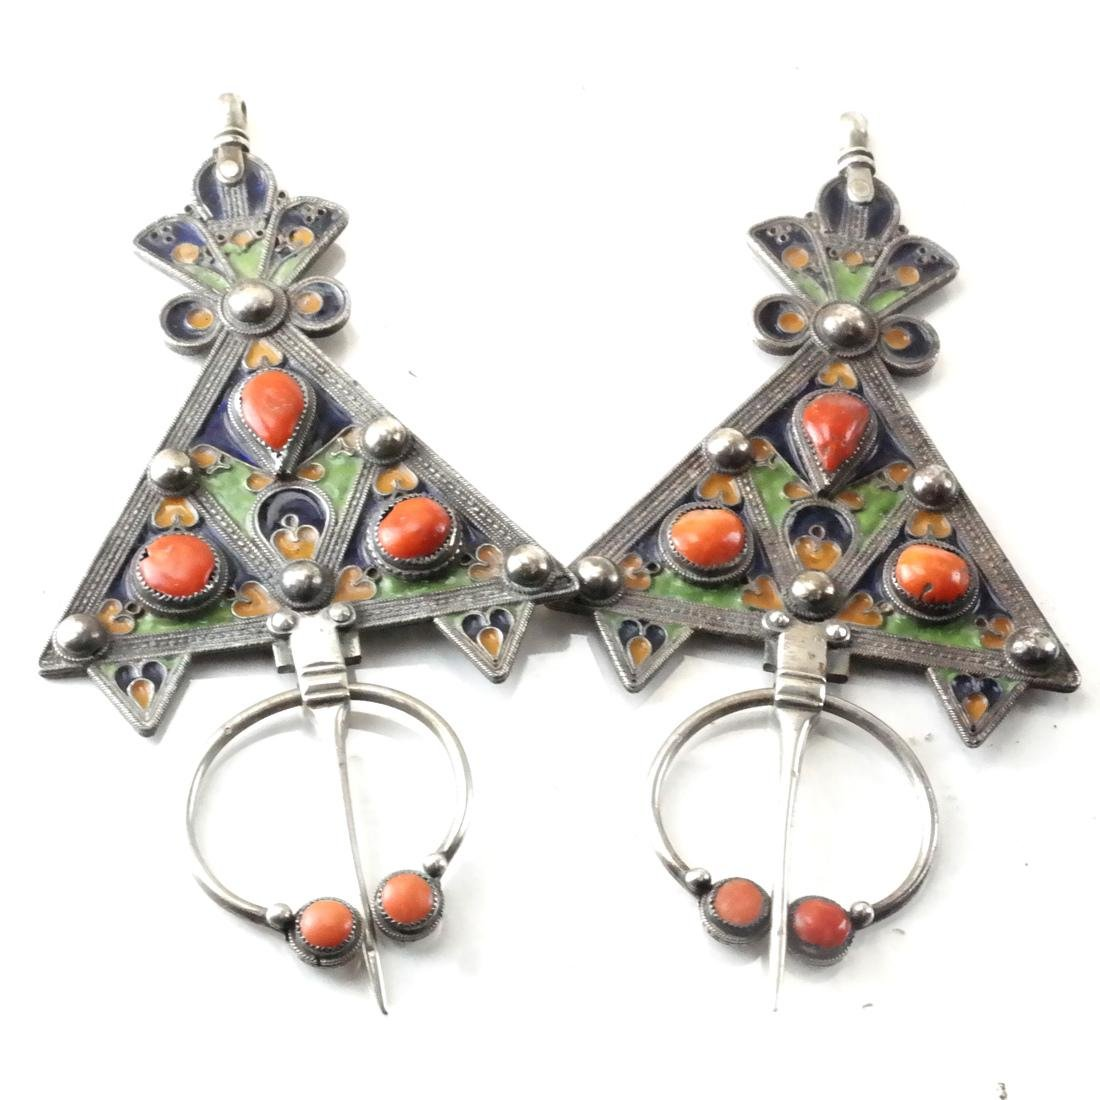 Antique Silver & Enamel Afghan/Central Asian Drops